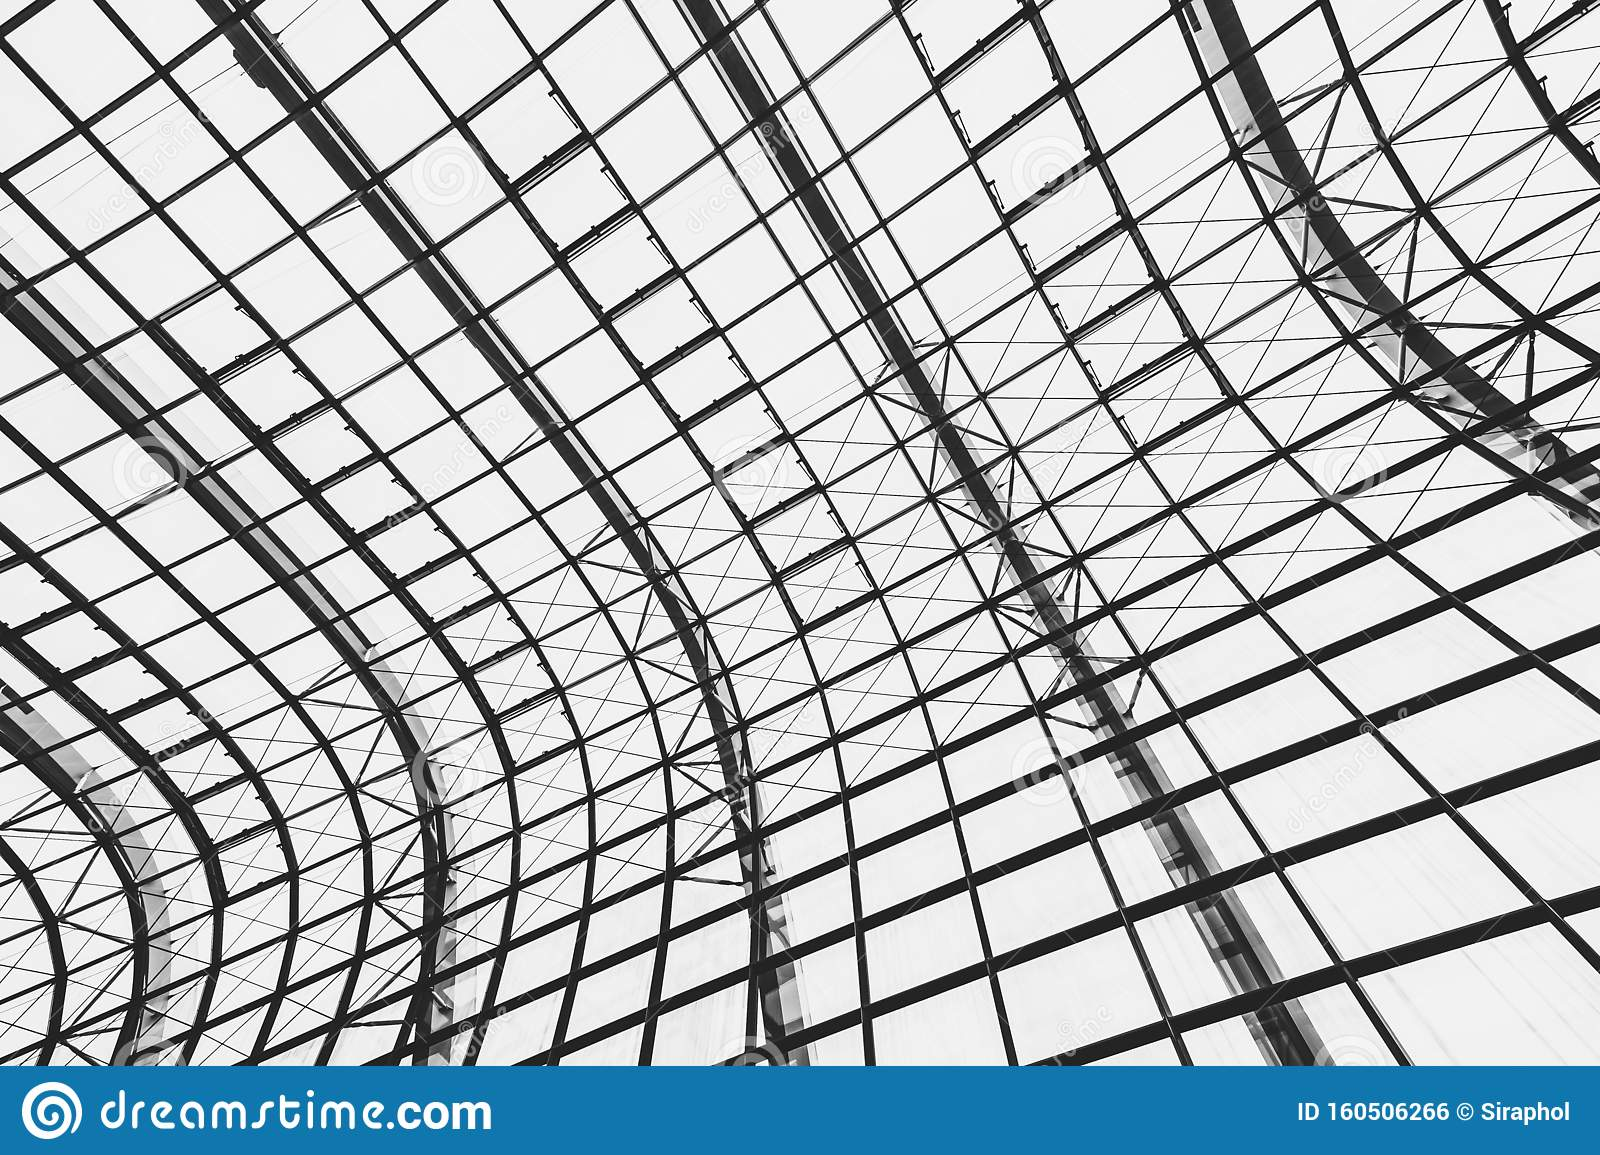 Abstract Glass Window Roof Architecture Exterior Stock Photo Image Of Interior Frame 160506266